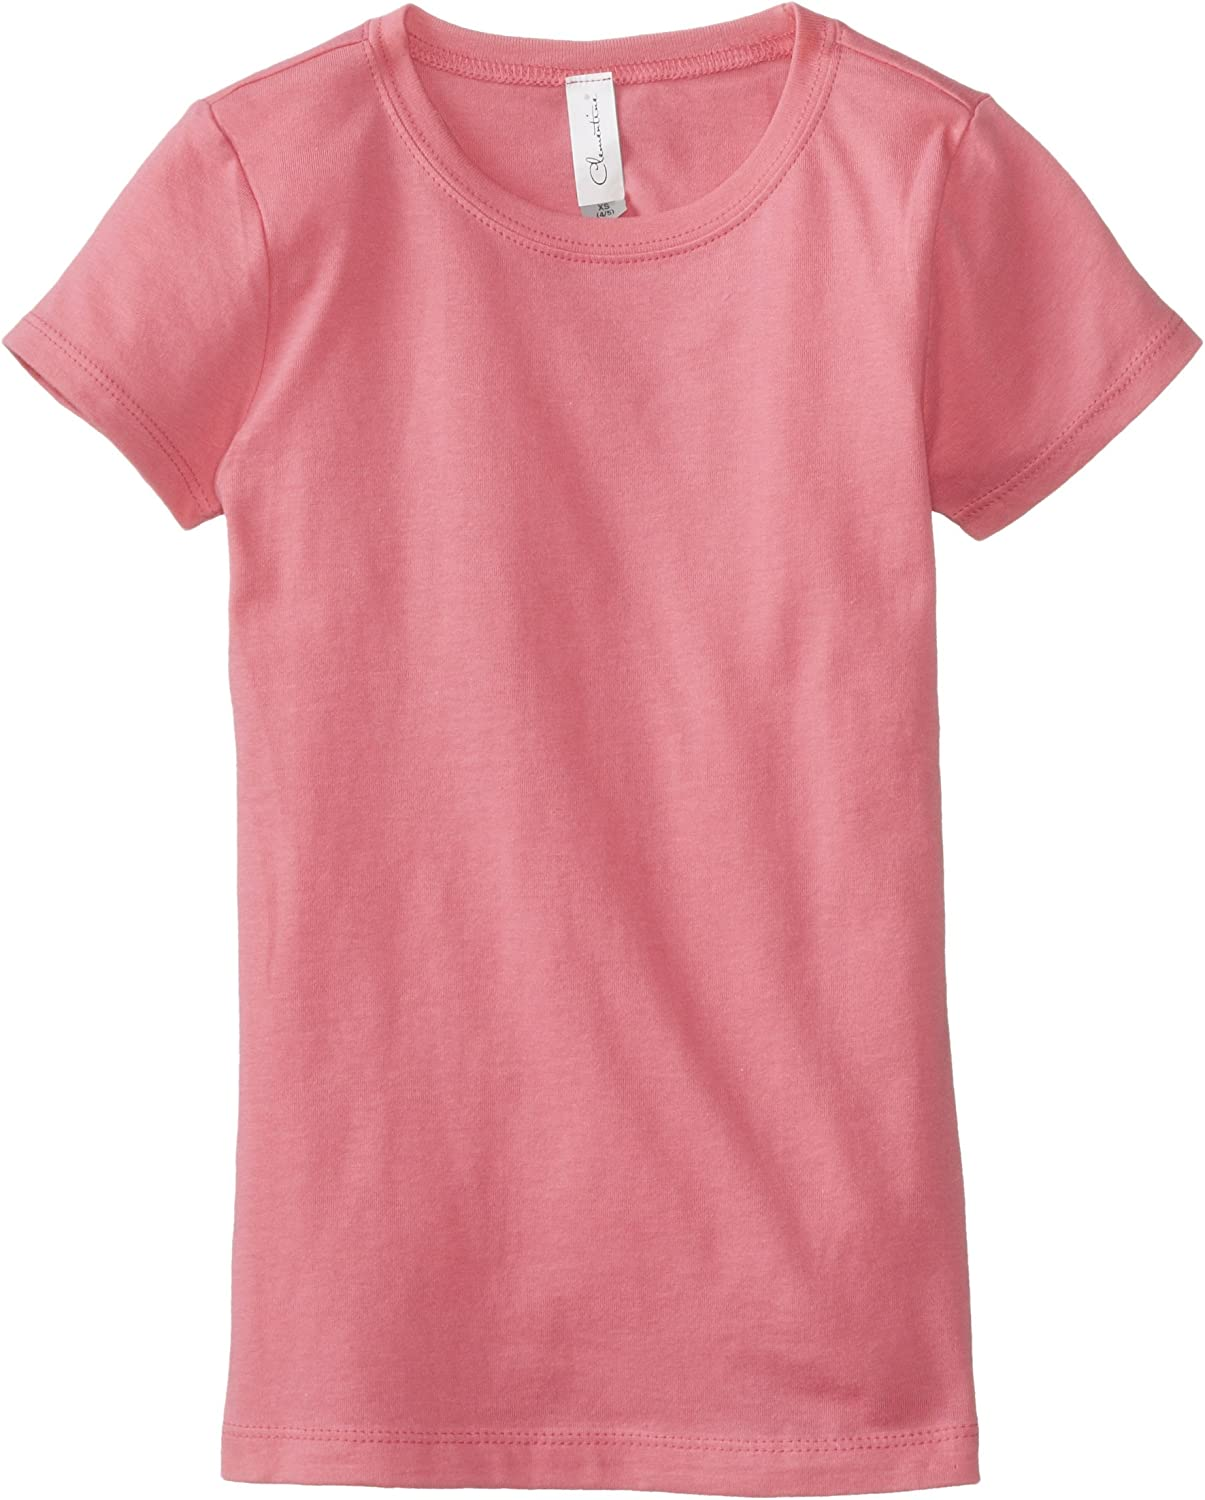 Clementine Girls T Crew Neck 100/% Soft Cotton Short Shirts Tees Assorted Colors